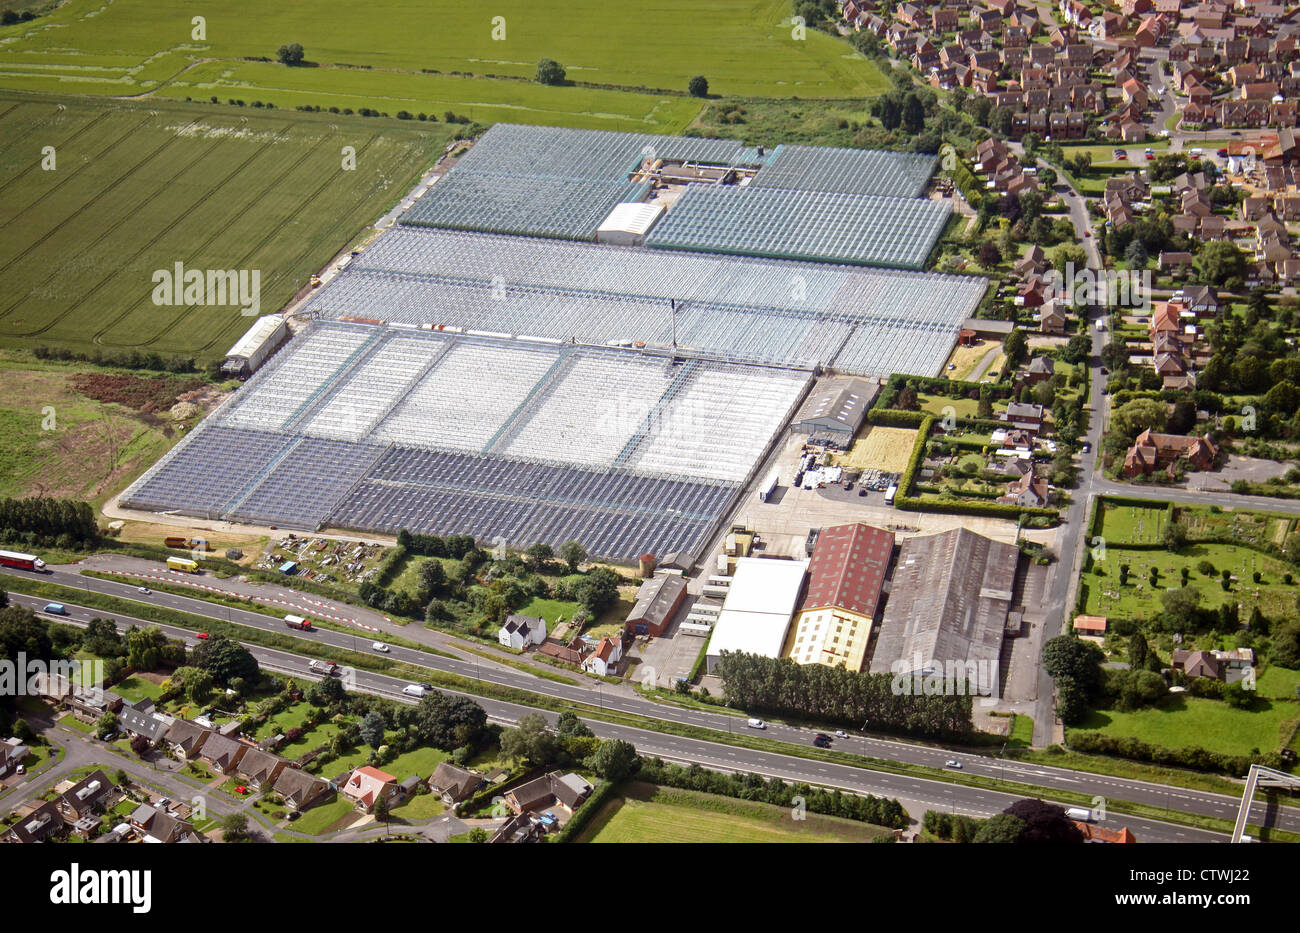 aerial view of commercial greenhouses in Yorkshire - Stock Image